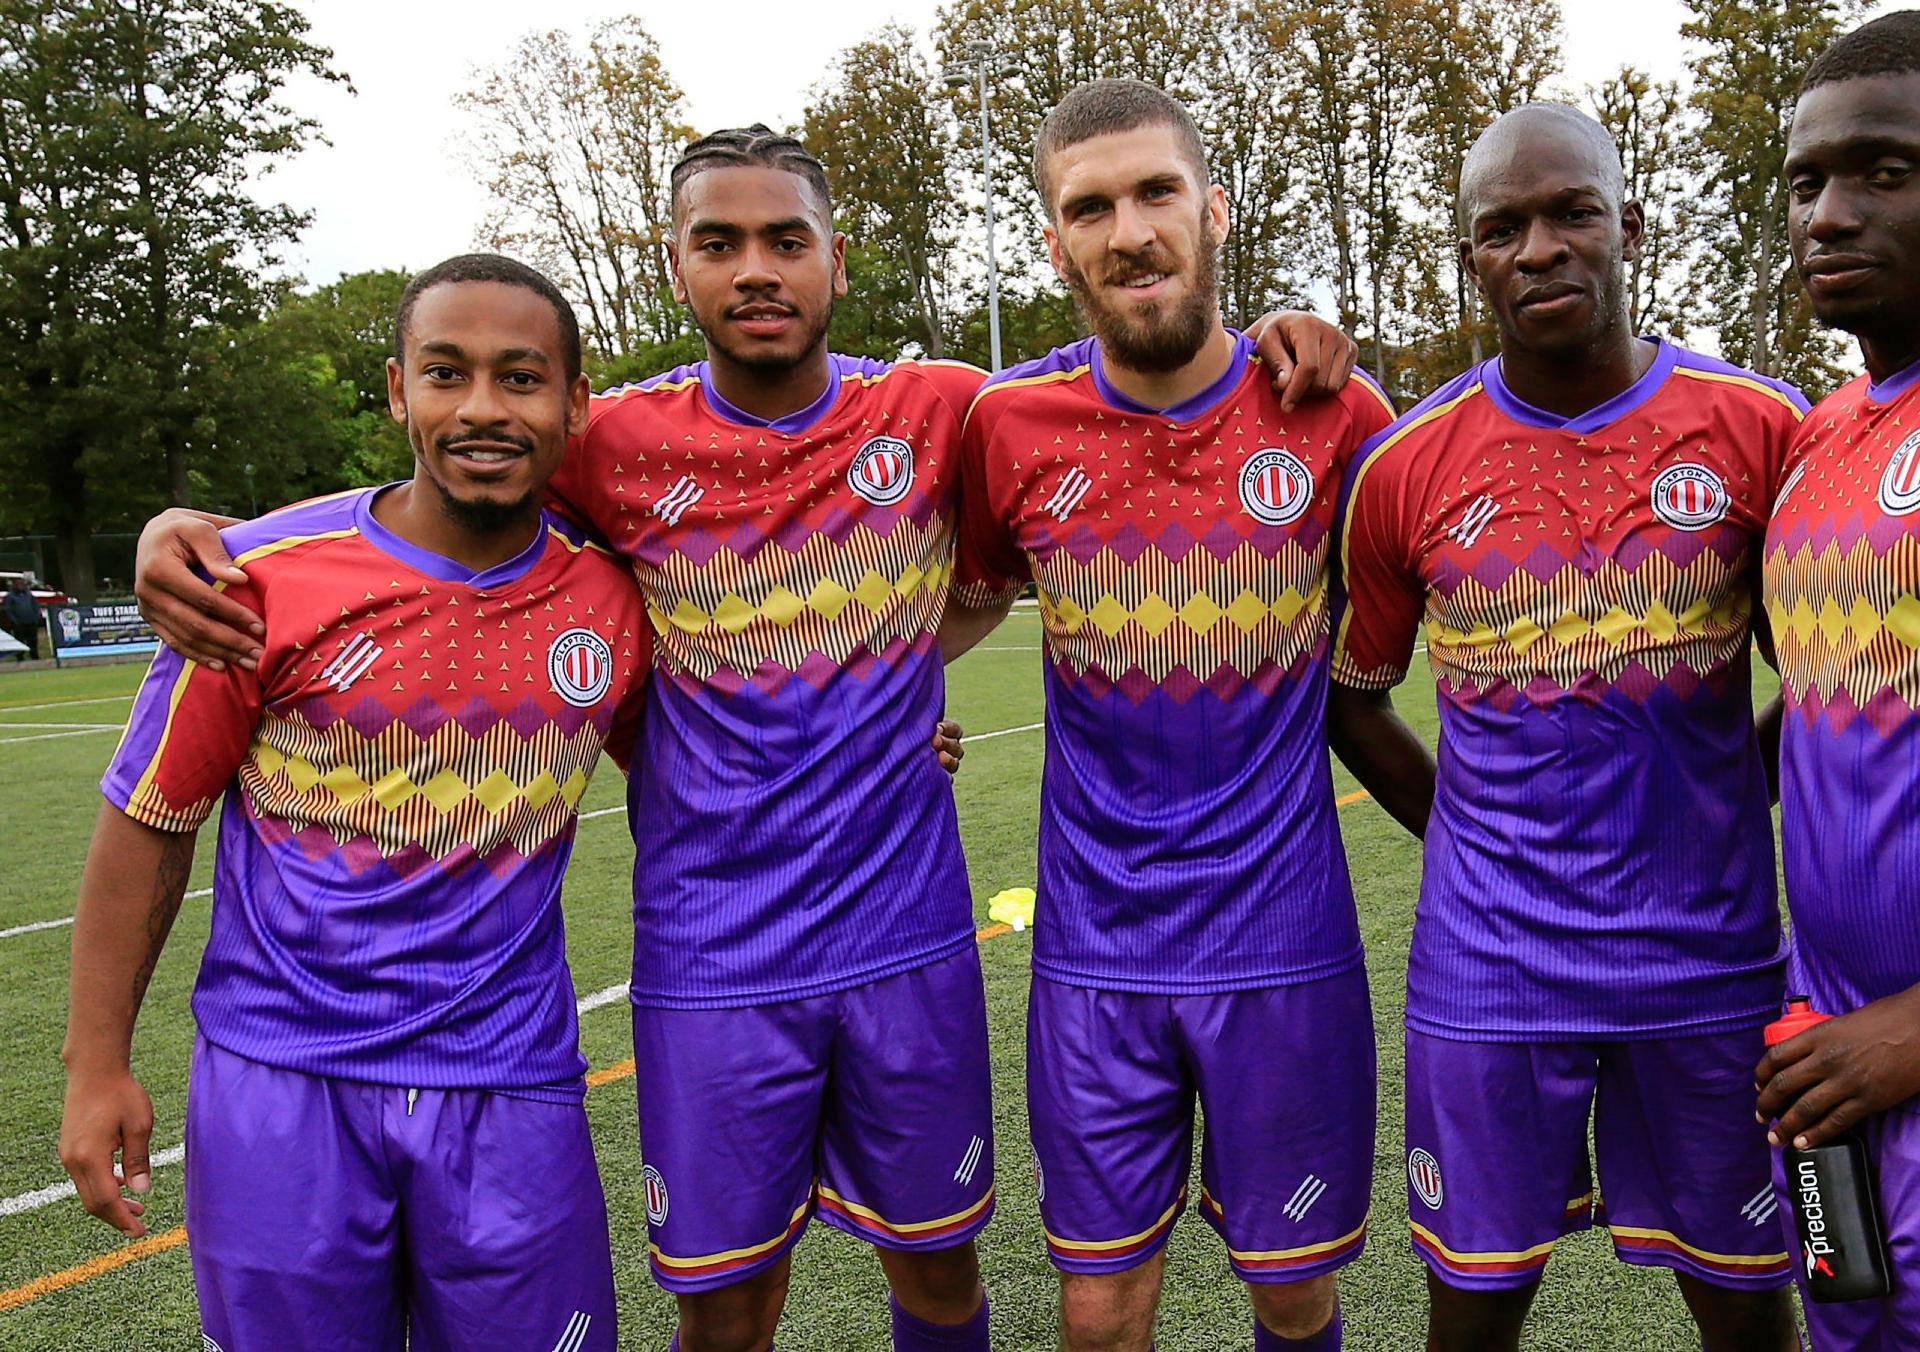 Clapton CFC players pose for pictures after their away game win 2-0 against Healing Town in East Acton, in London